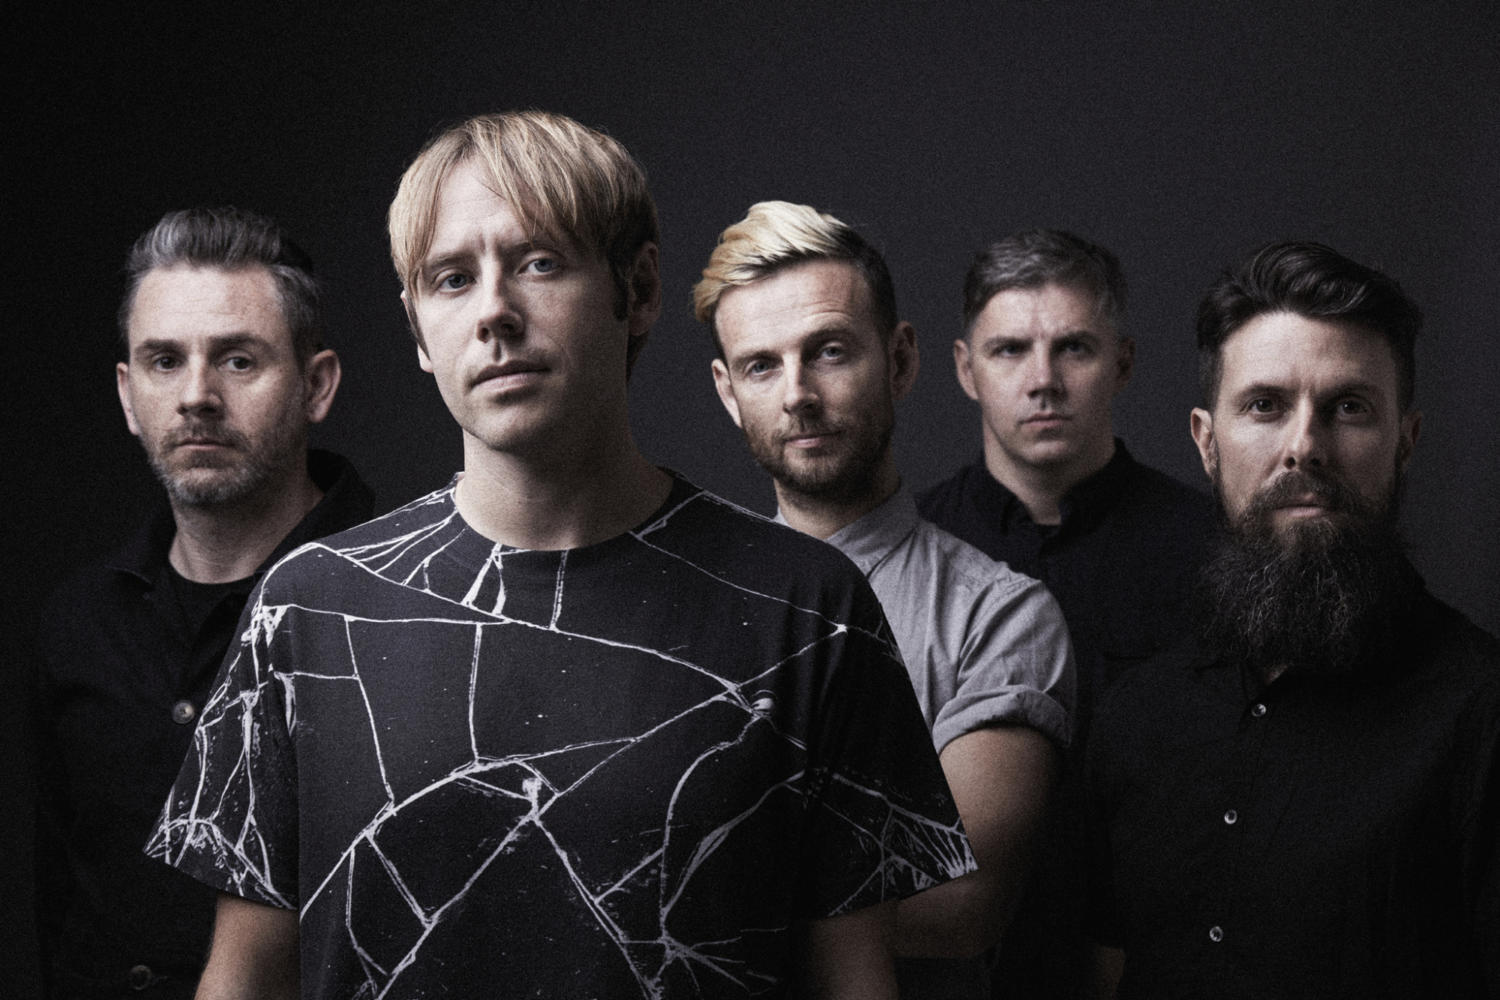 Go behind-the-scenes with No Devotion on the set of their 'Permanent Sunlight' music video